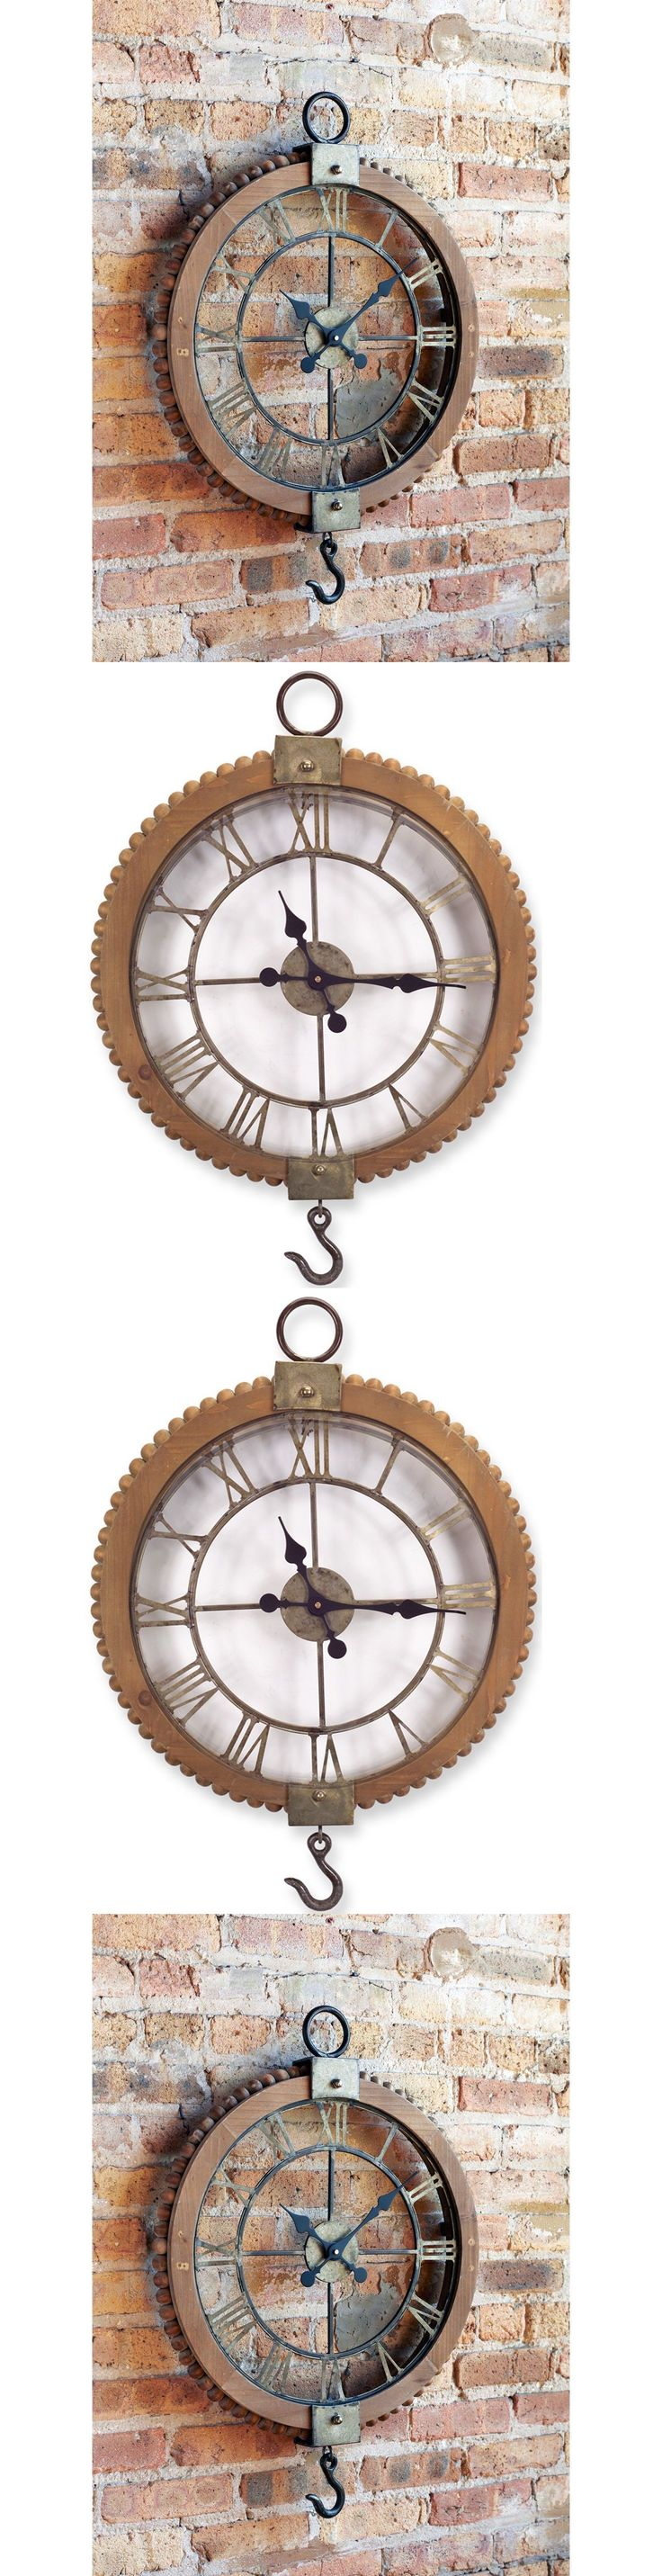 Wall Clocks 20561: Vintage Industrial Wall Clock Rustic Pulley Style Roman Numeral 22 In. Round -> BUY IT NOW ONLY: $199.99 on eBay!